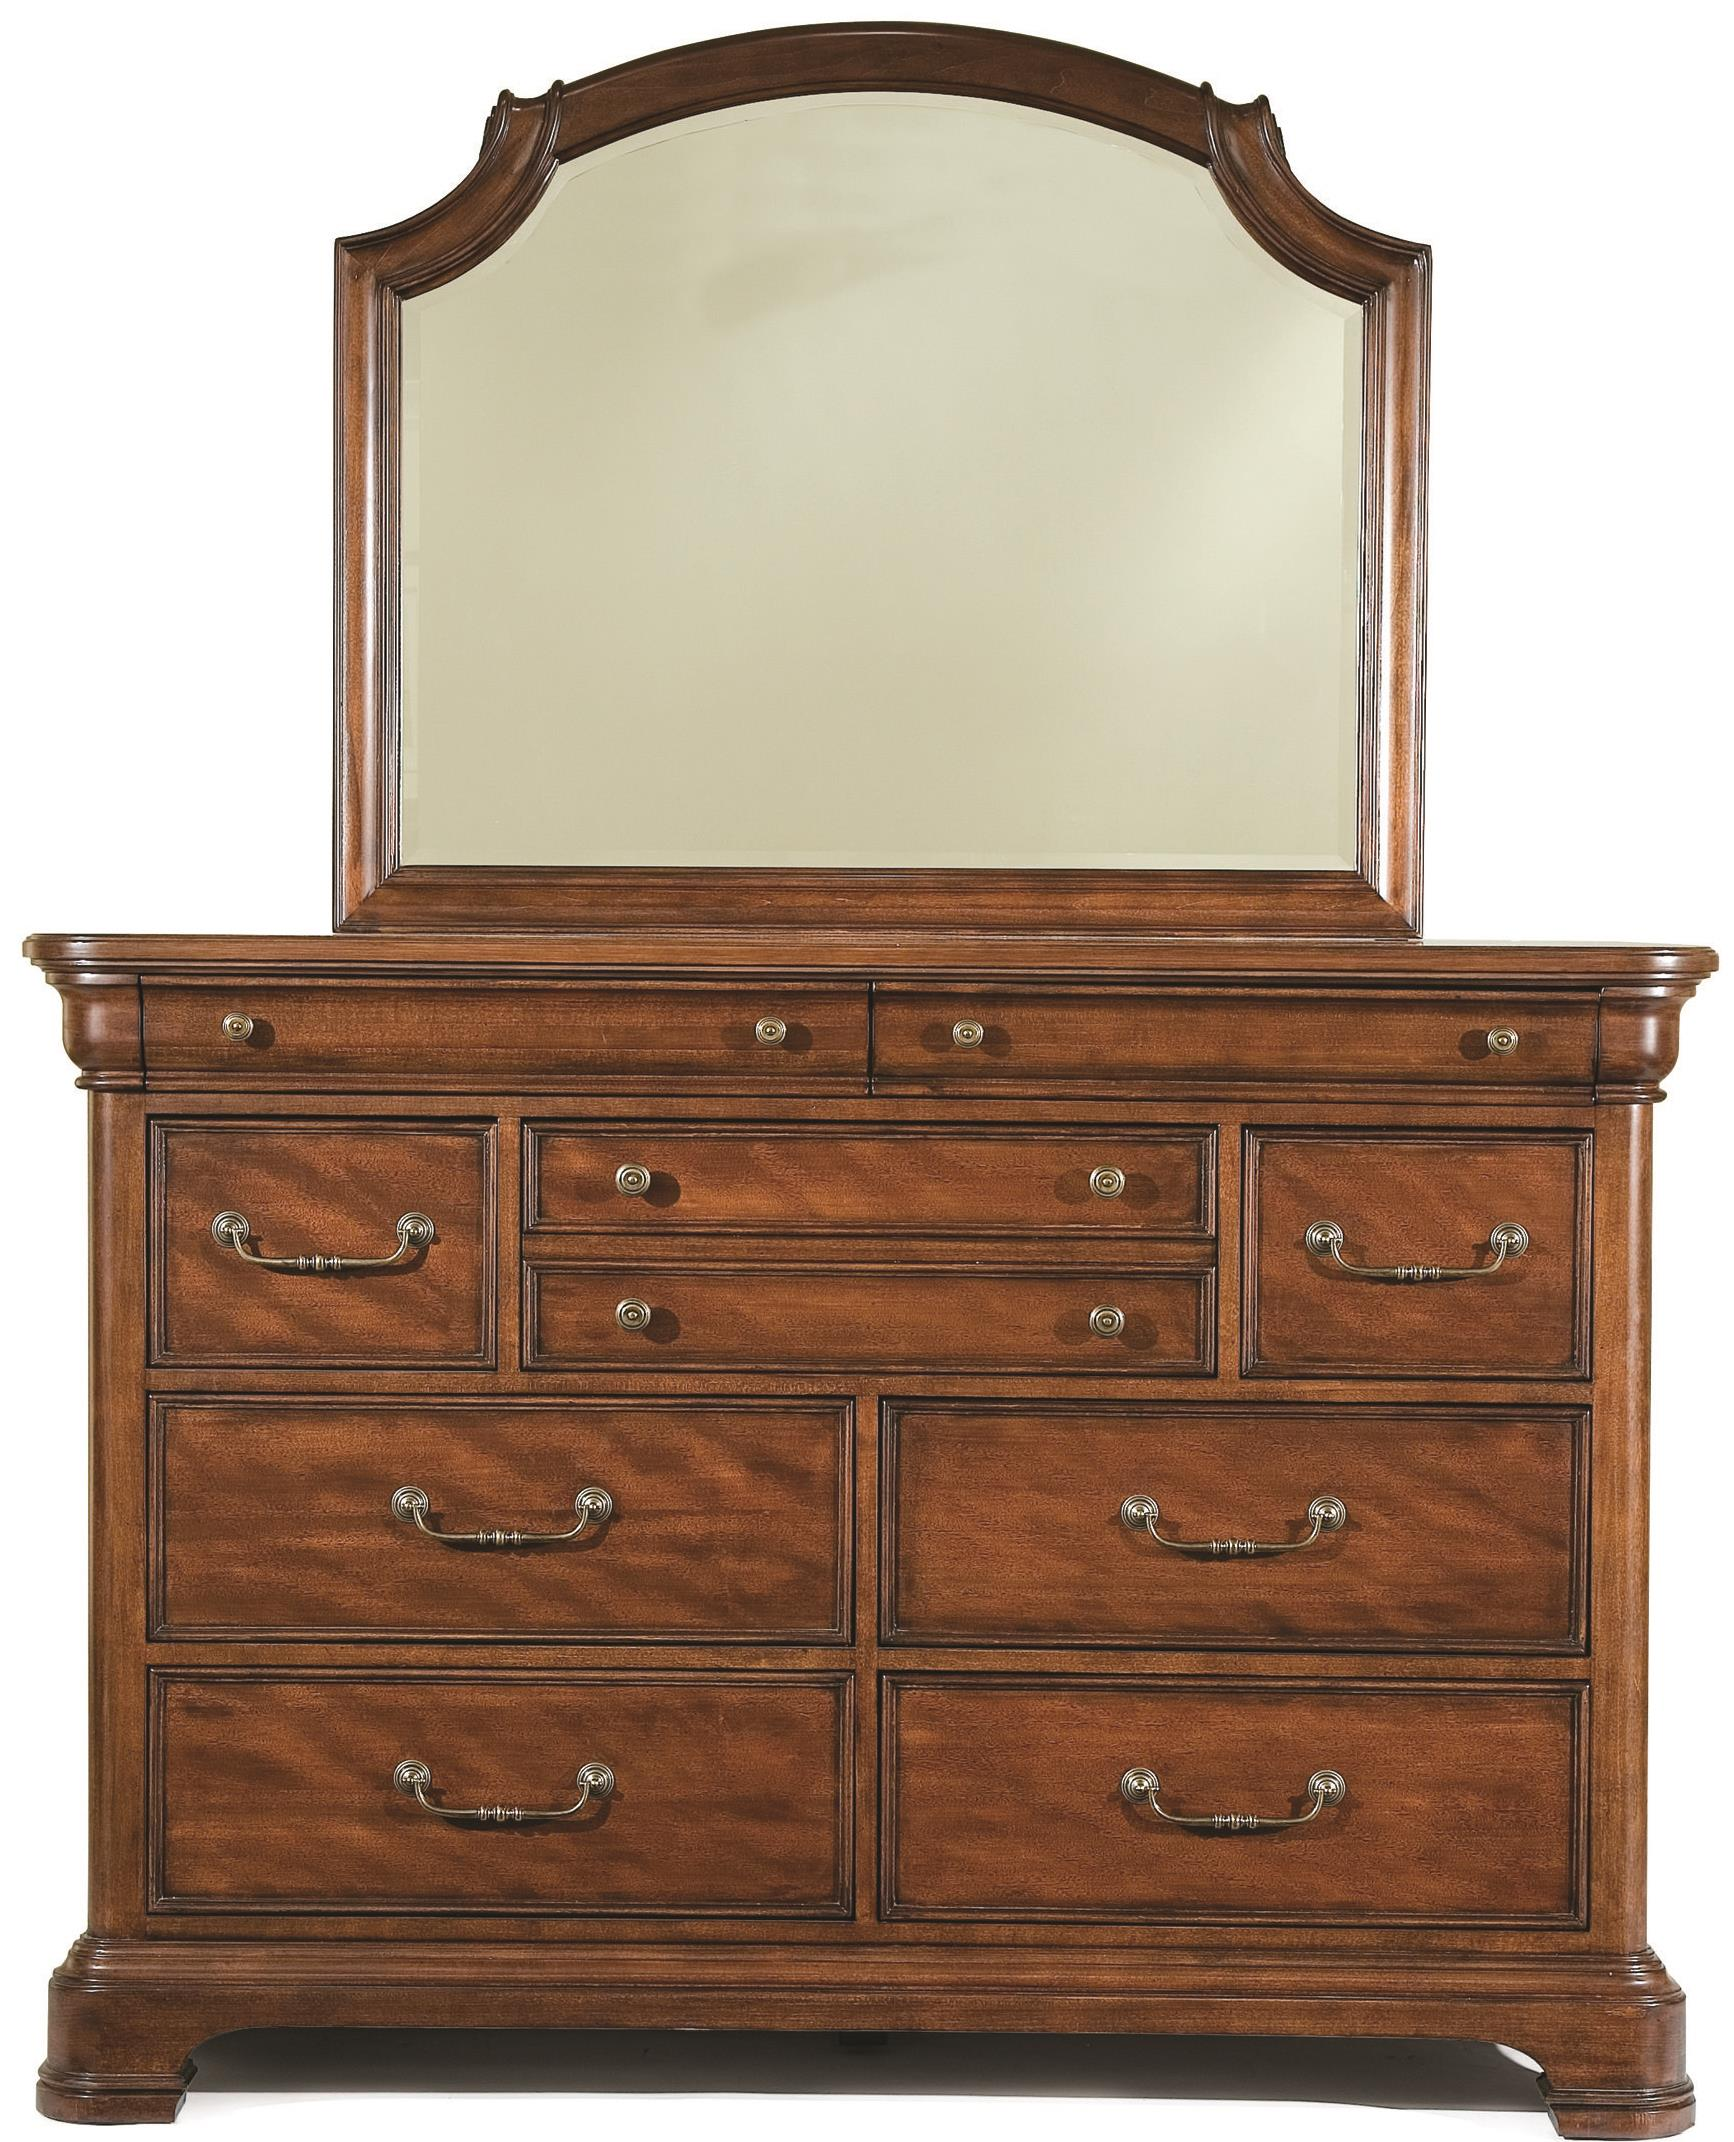 Legacy Classic Evolution Bureau with Mirror - Item Number: 9180-1500+0300